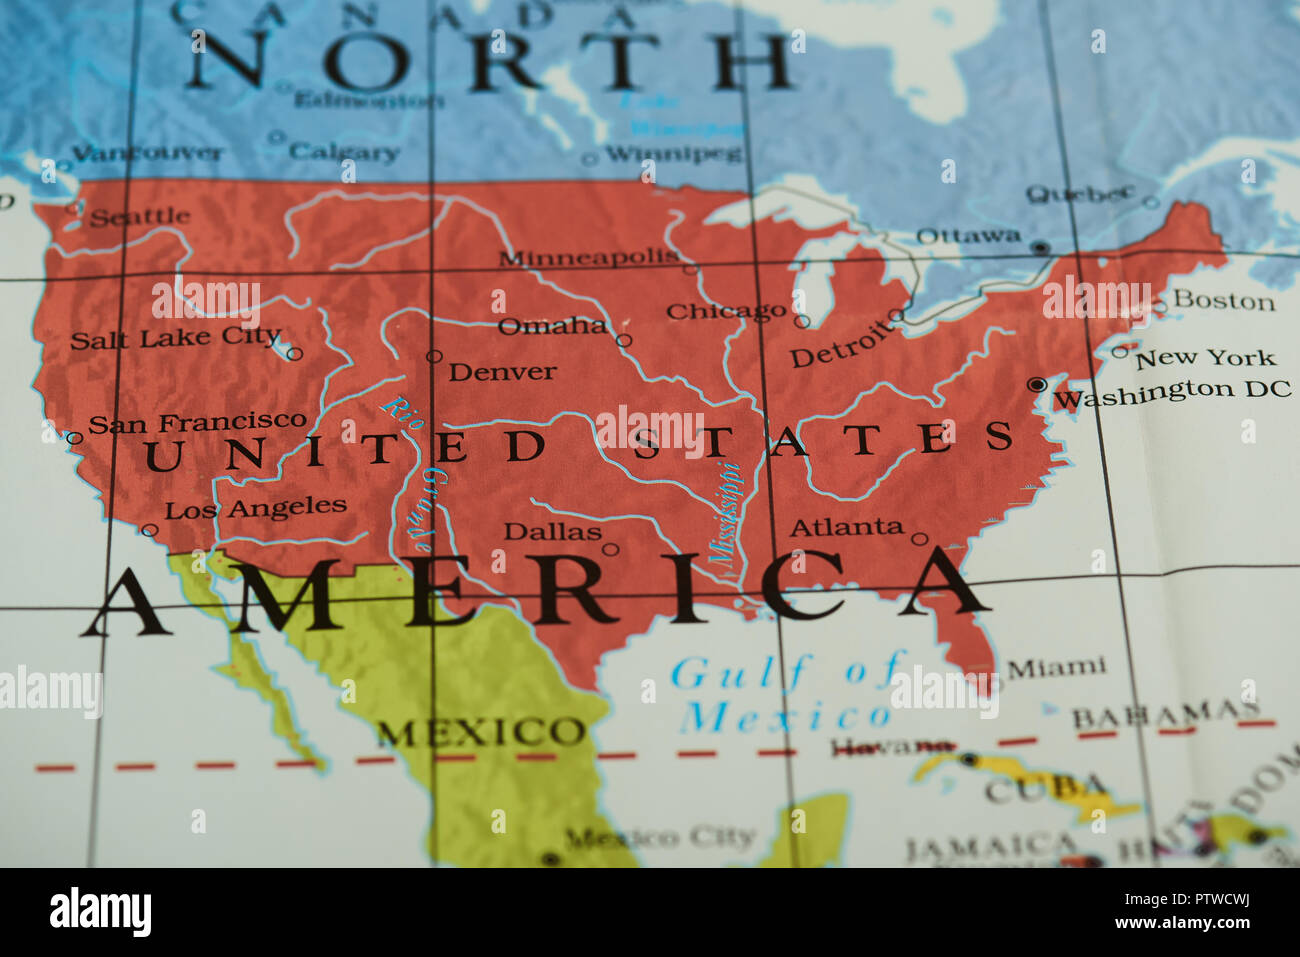 View Map Of United States.United States Country On Paper Map Close Up View Stock Photo